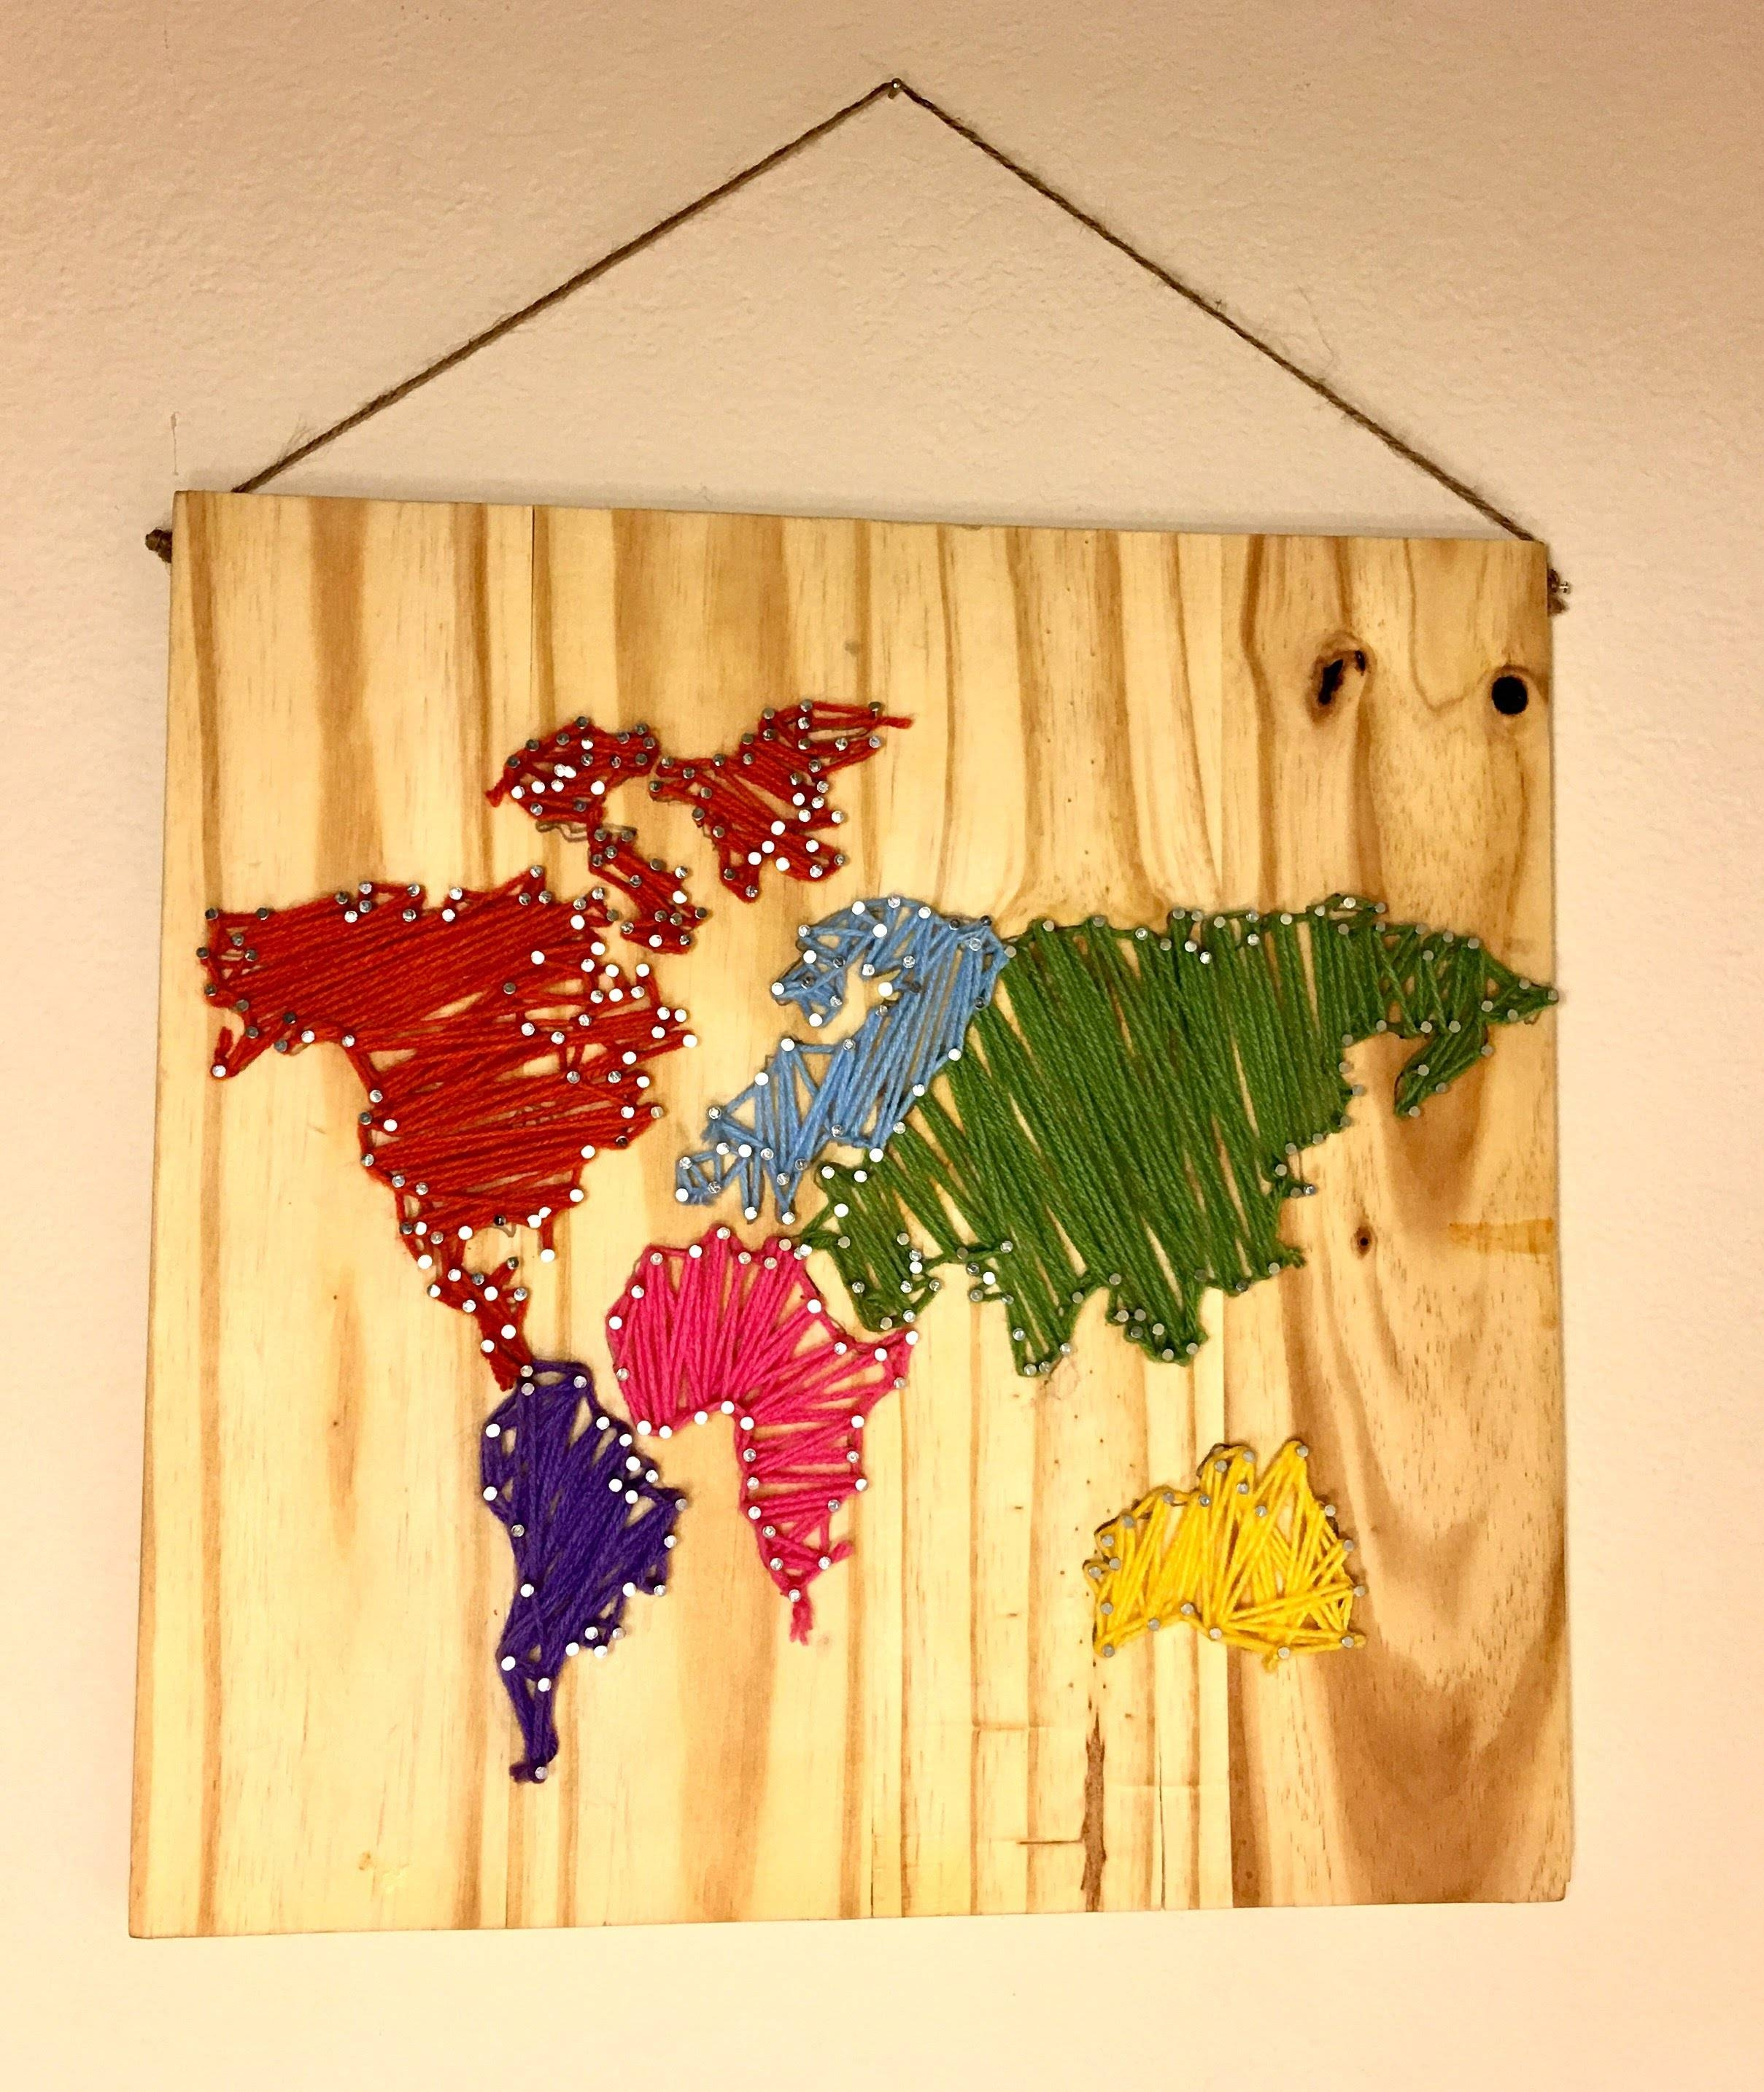 Diy World Map Wall Nail String Art [timelapse] – Youtube In 2018 String Map Wall Art (View 2 of 20)